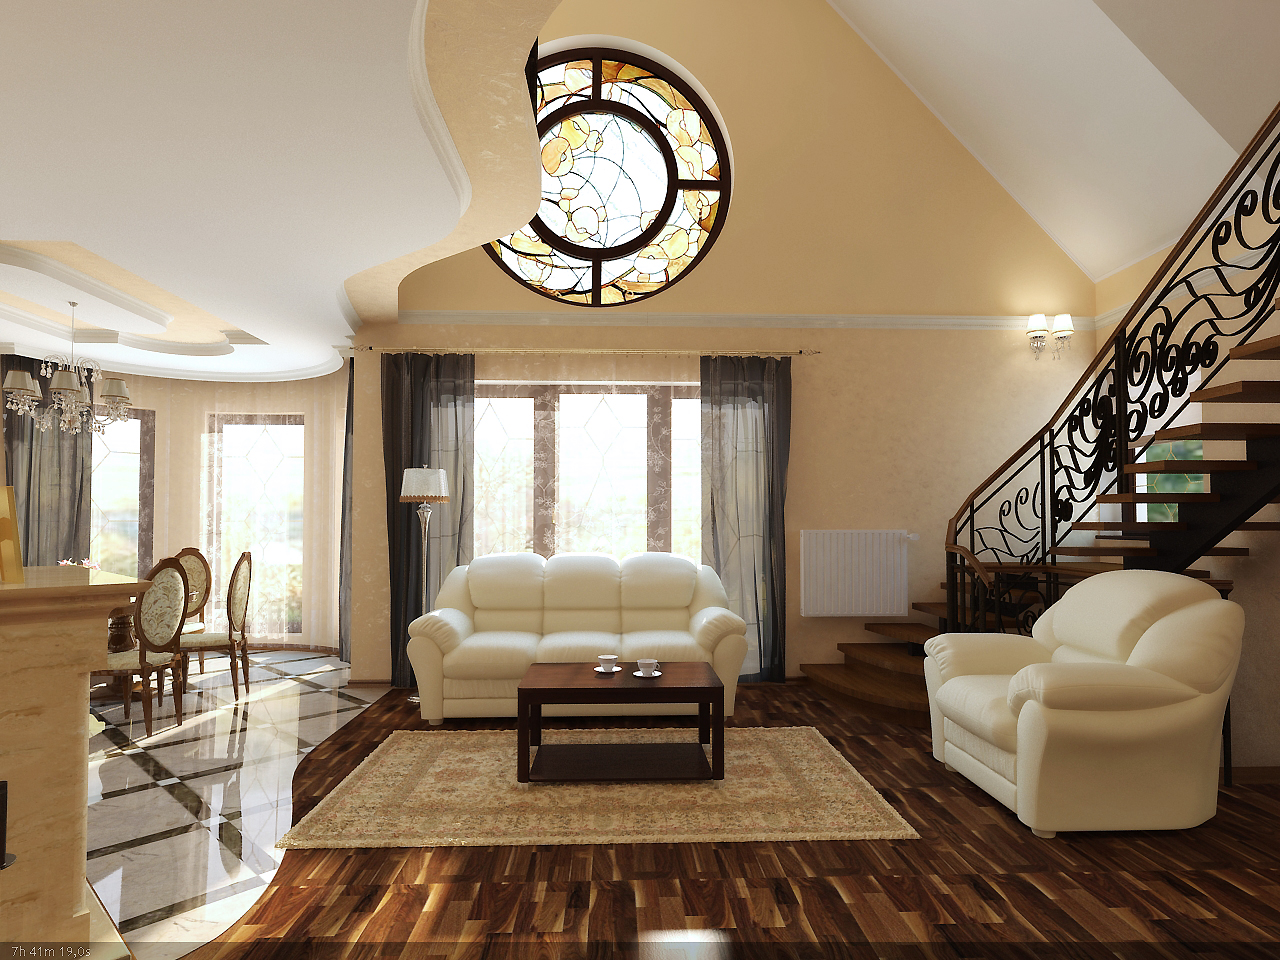 Living Room Home Interior Designs Ideas classic interior design home interior